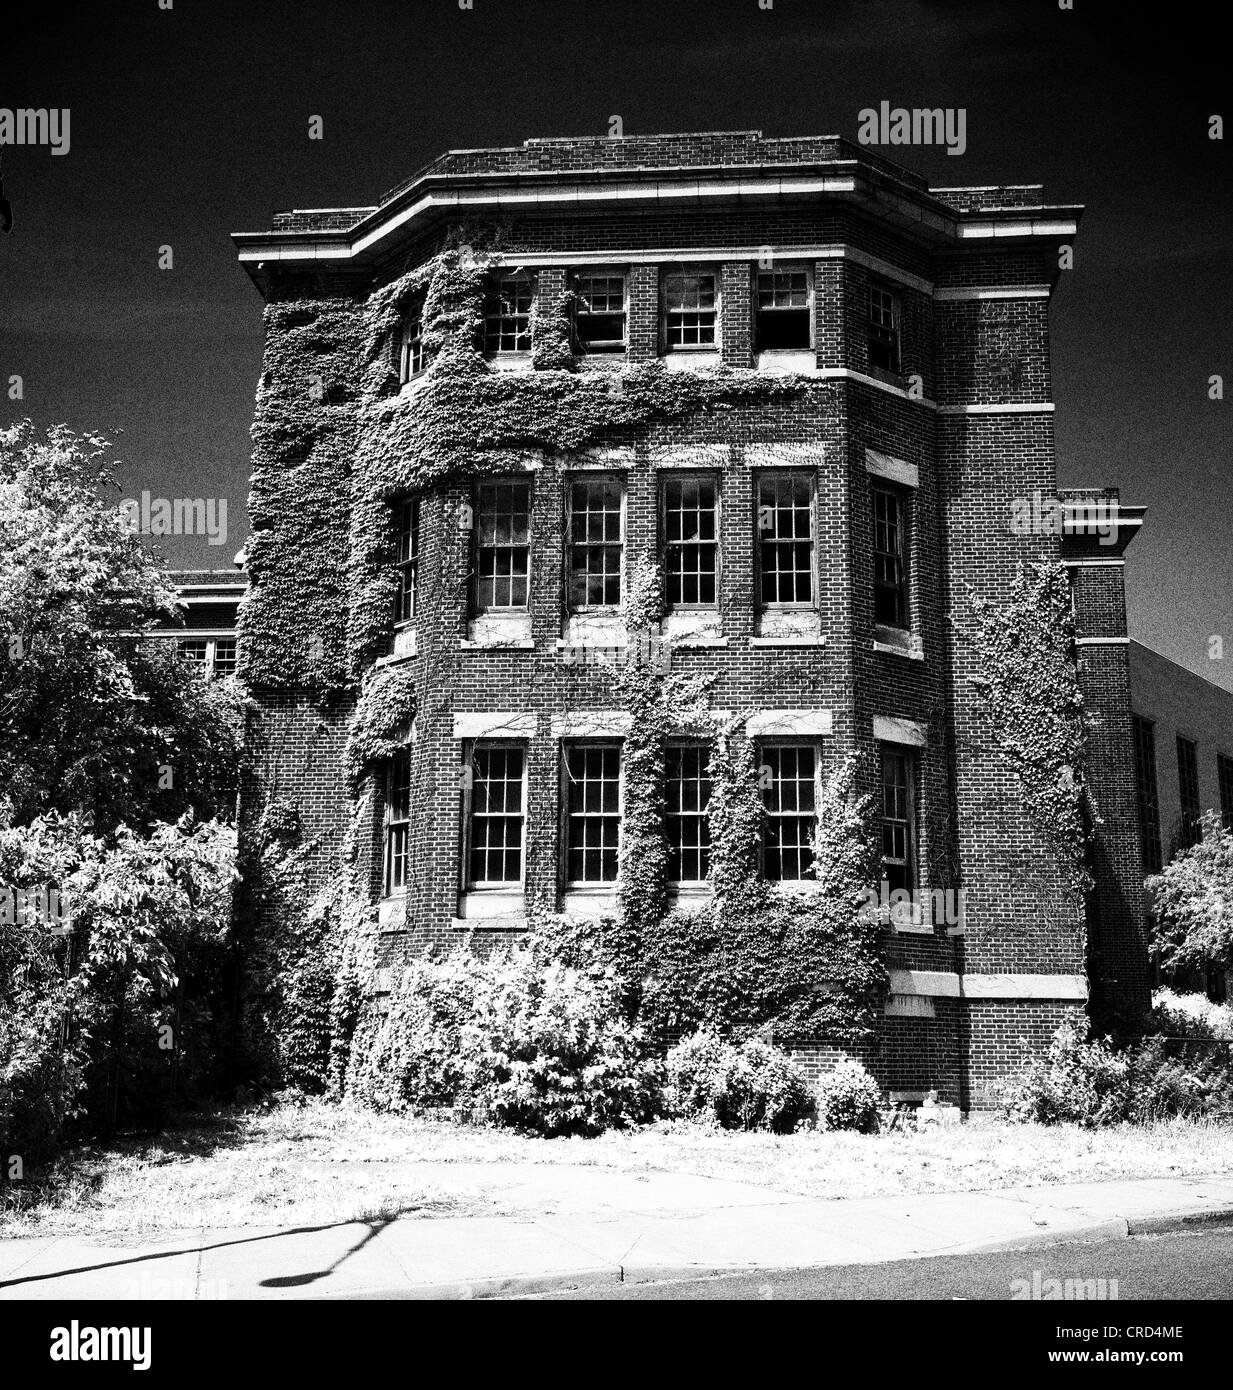 [act7] New Manhattan Psychicatric Hospital inmate  Unused-wing-of-manhattan-psychiatric-center-on-the-wards-island-portion-CRD4ME